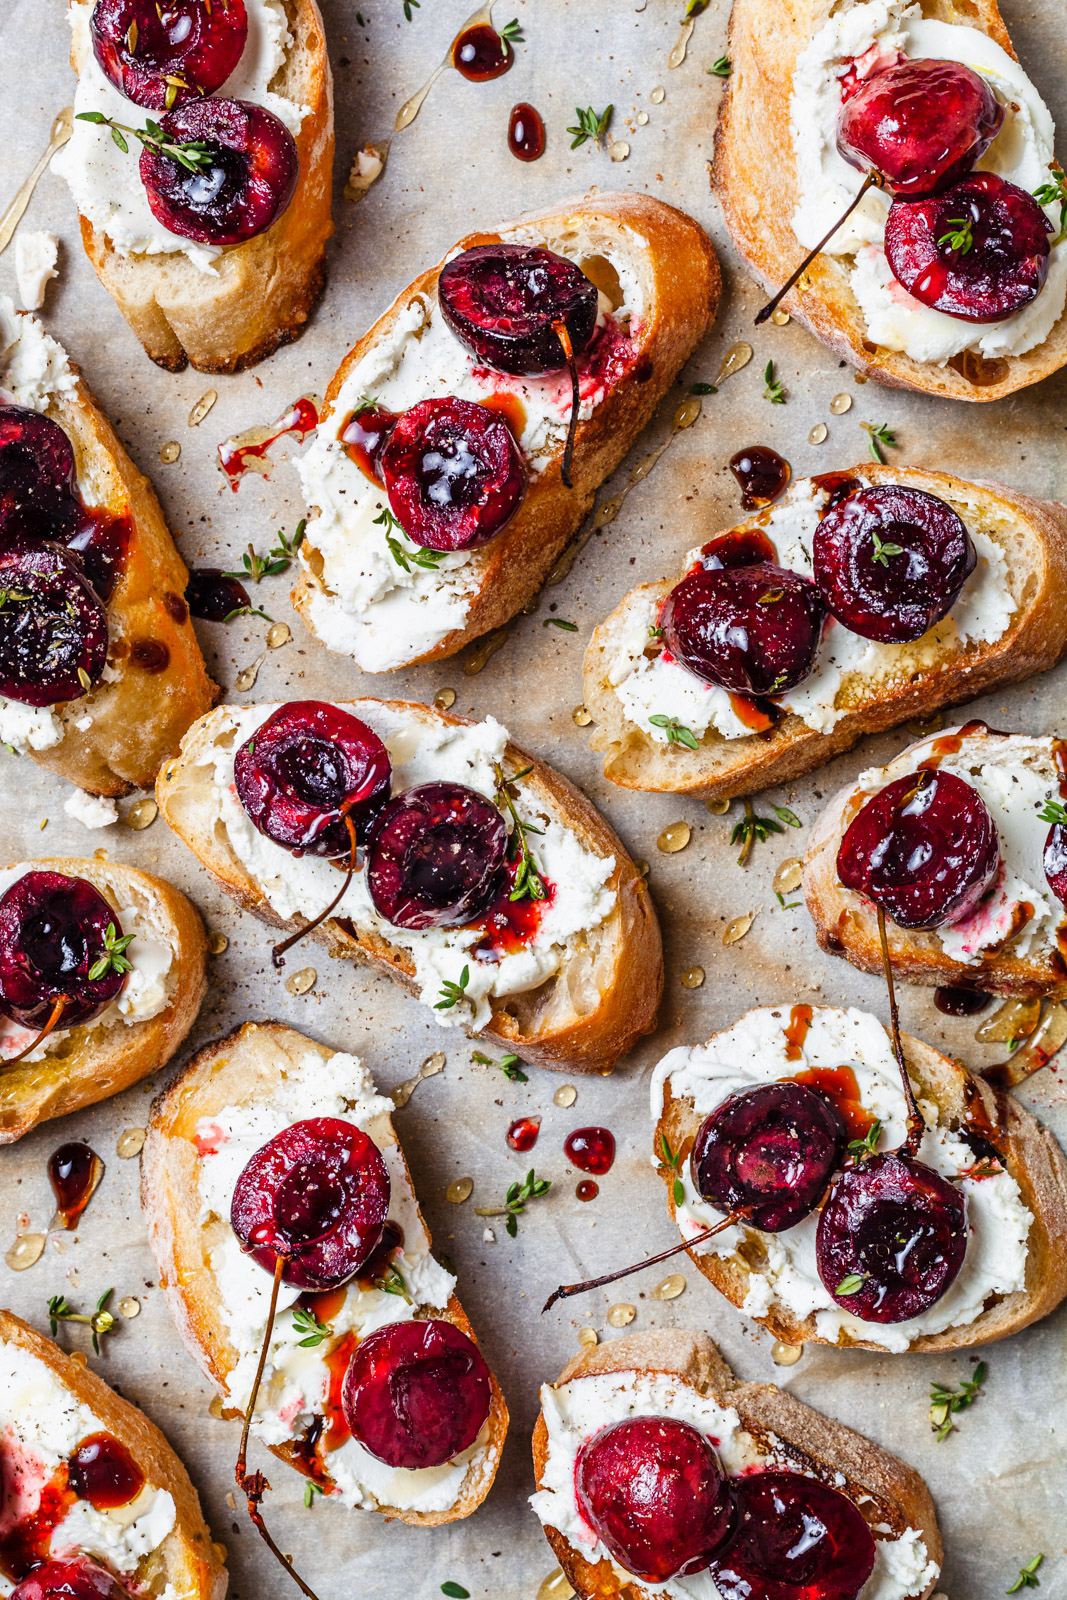 Balsamic Roasted Cherry and Goat Cheese Crostini